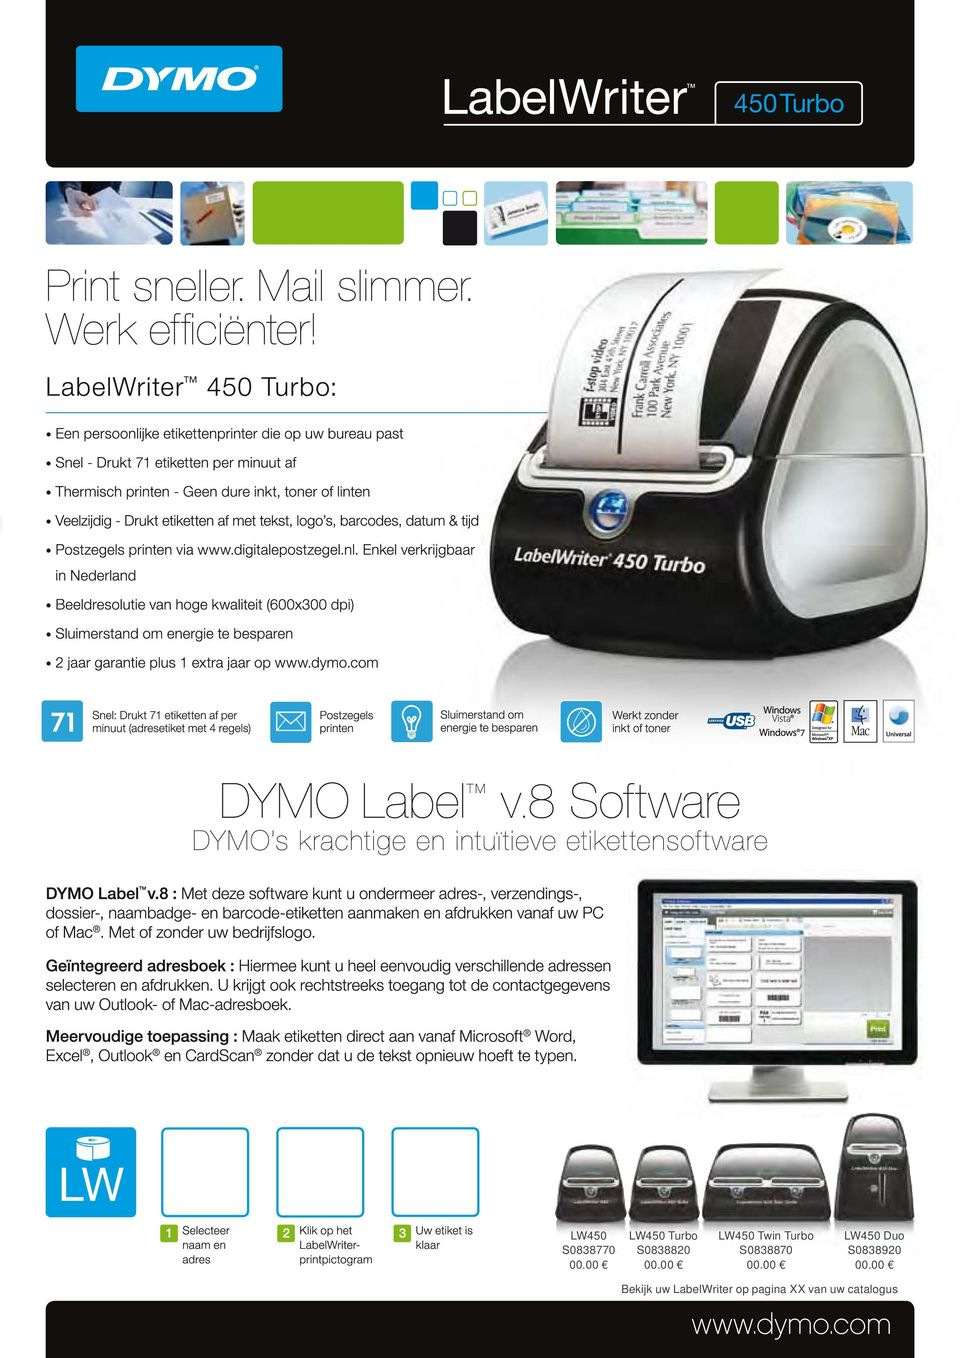 71 minute labels per minute (4-line address (4-line label). address label). Includes DYMO Includes DYMO Label V8 Software. Label V8 Software. 71 Fast: Prints 71 labels per minute (4-line address label).